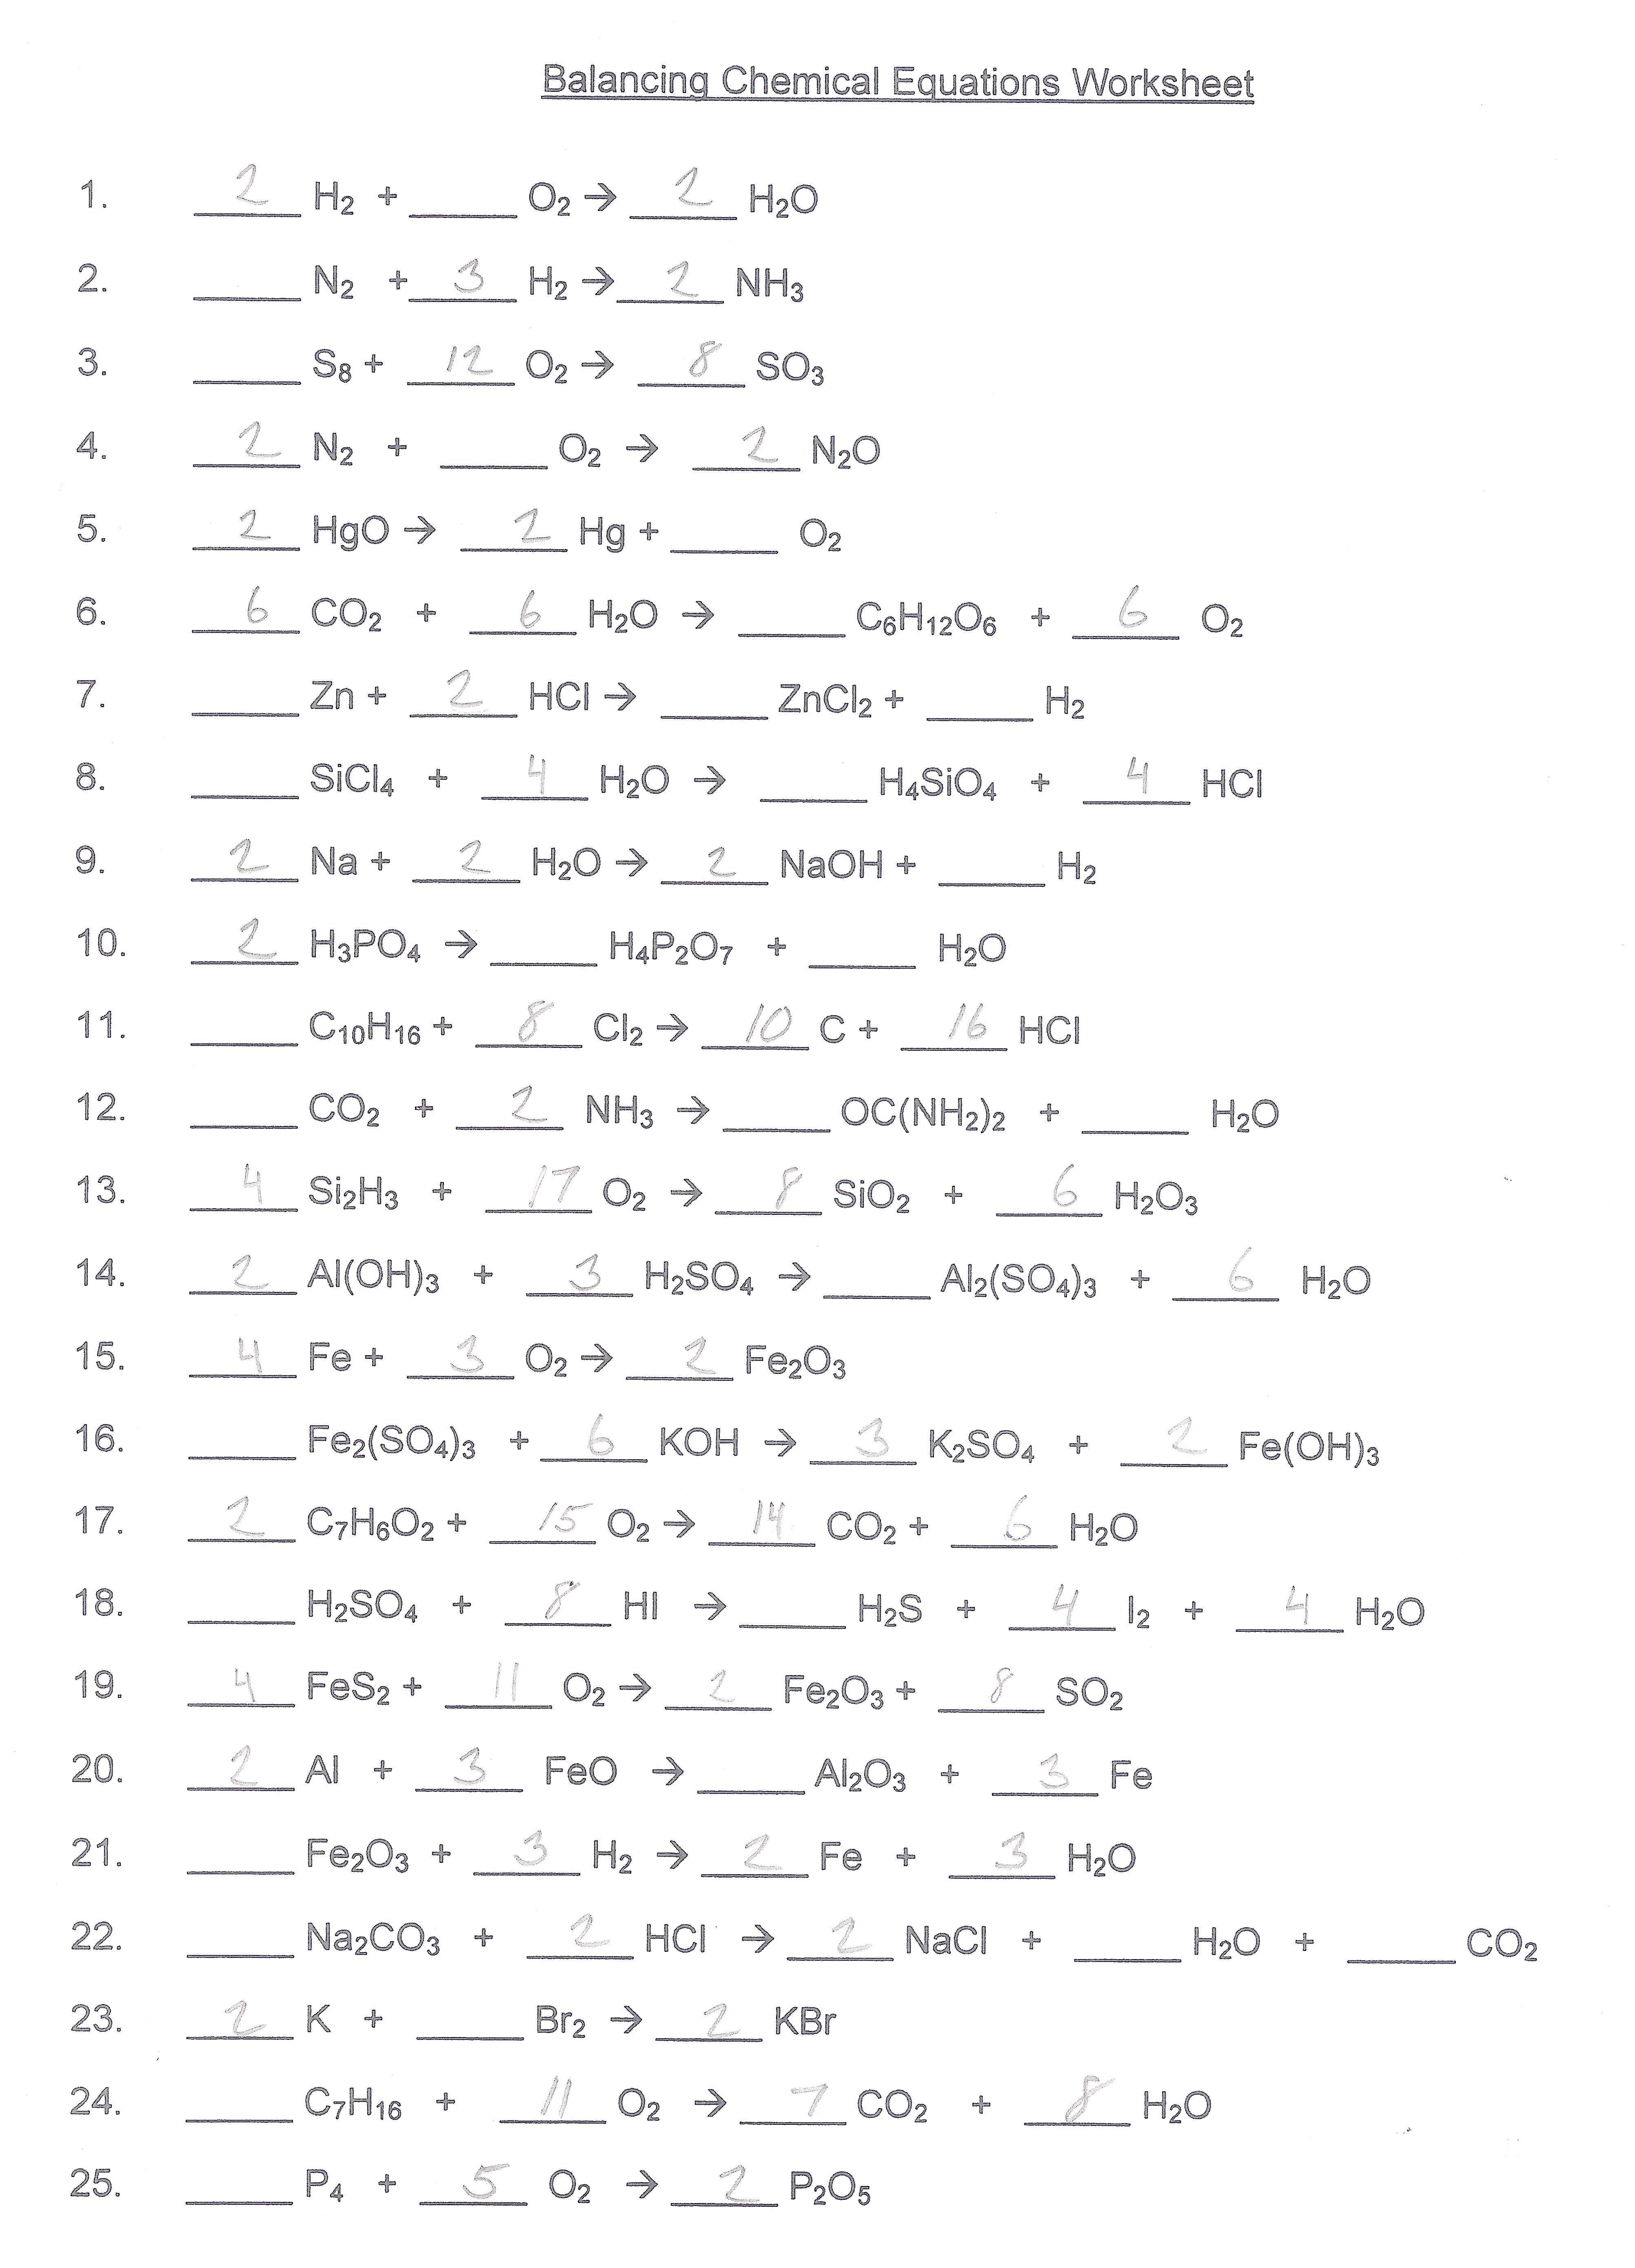 Balancing Equations Practice Worksheet Answers Second Grade Math Or Balancing Equations Practice Worksheet Answers